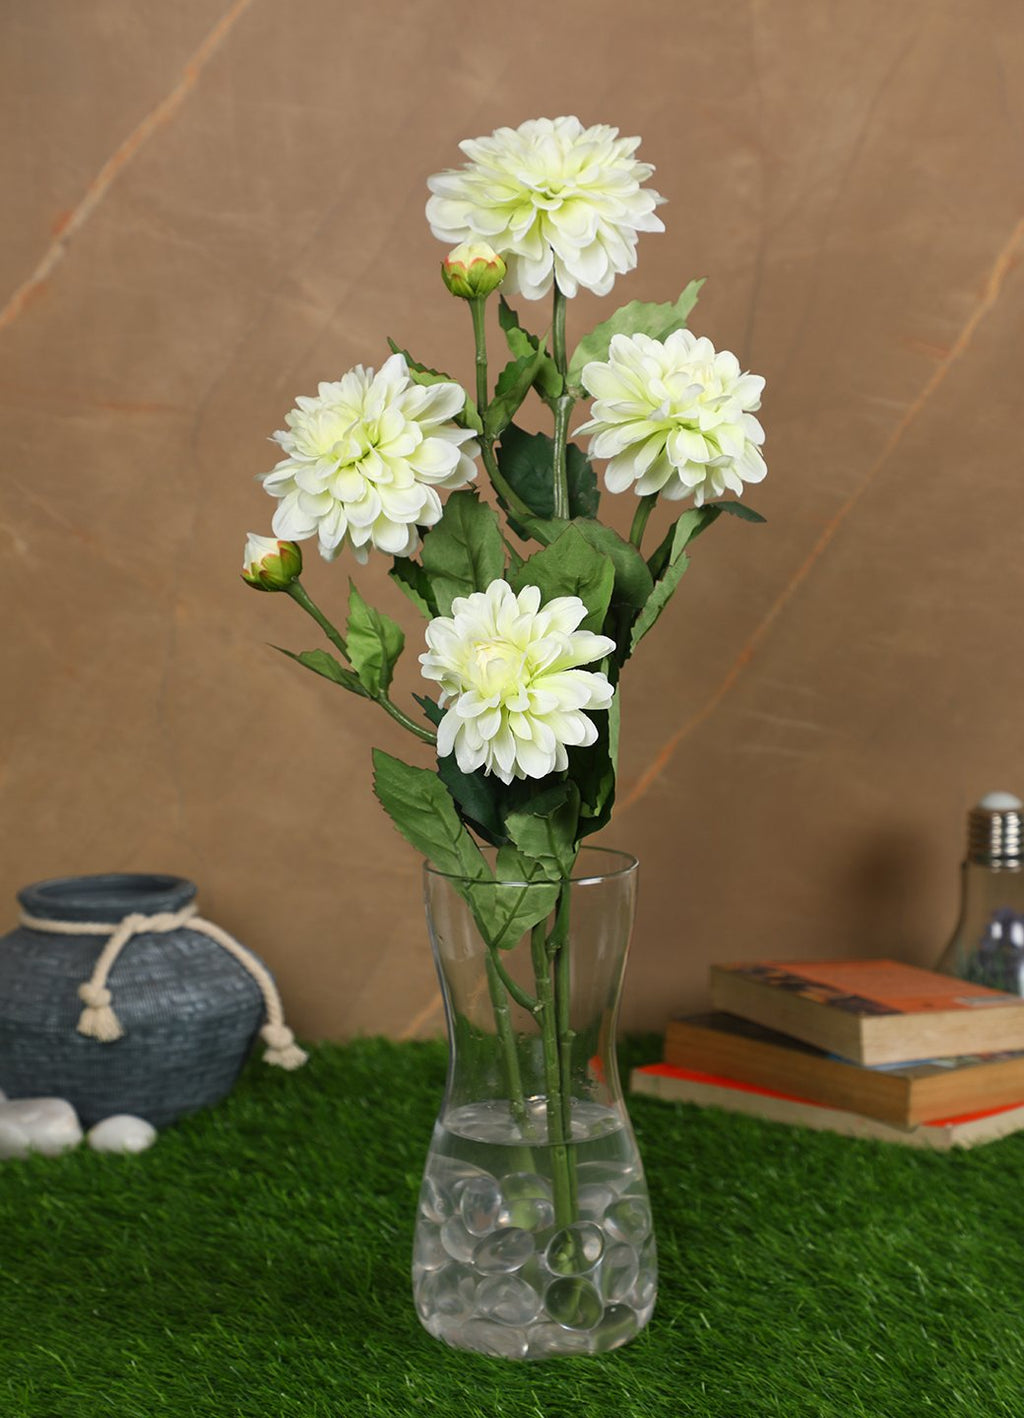 Pollination Stunning White Dahlia Artificial Flower for Home Decor (Pack of 2, H:  27 Inch ) - Artificial Flowers & Plants - PolliNation